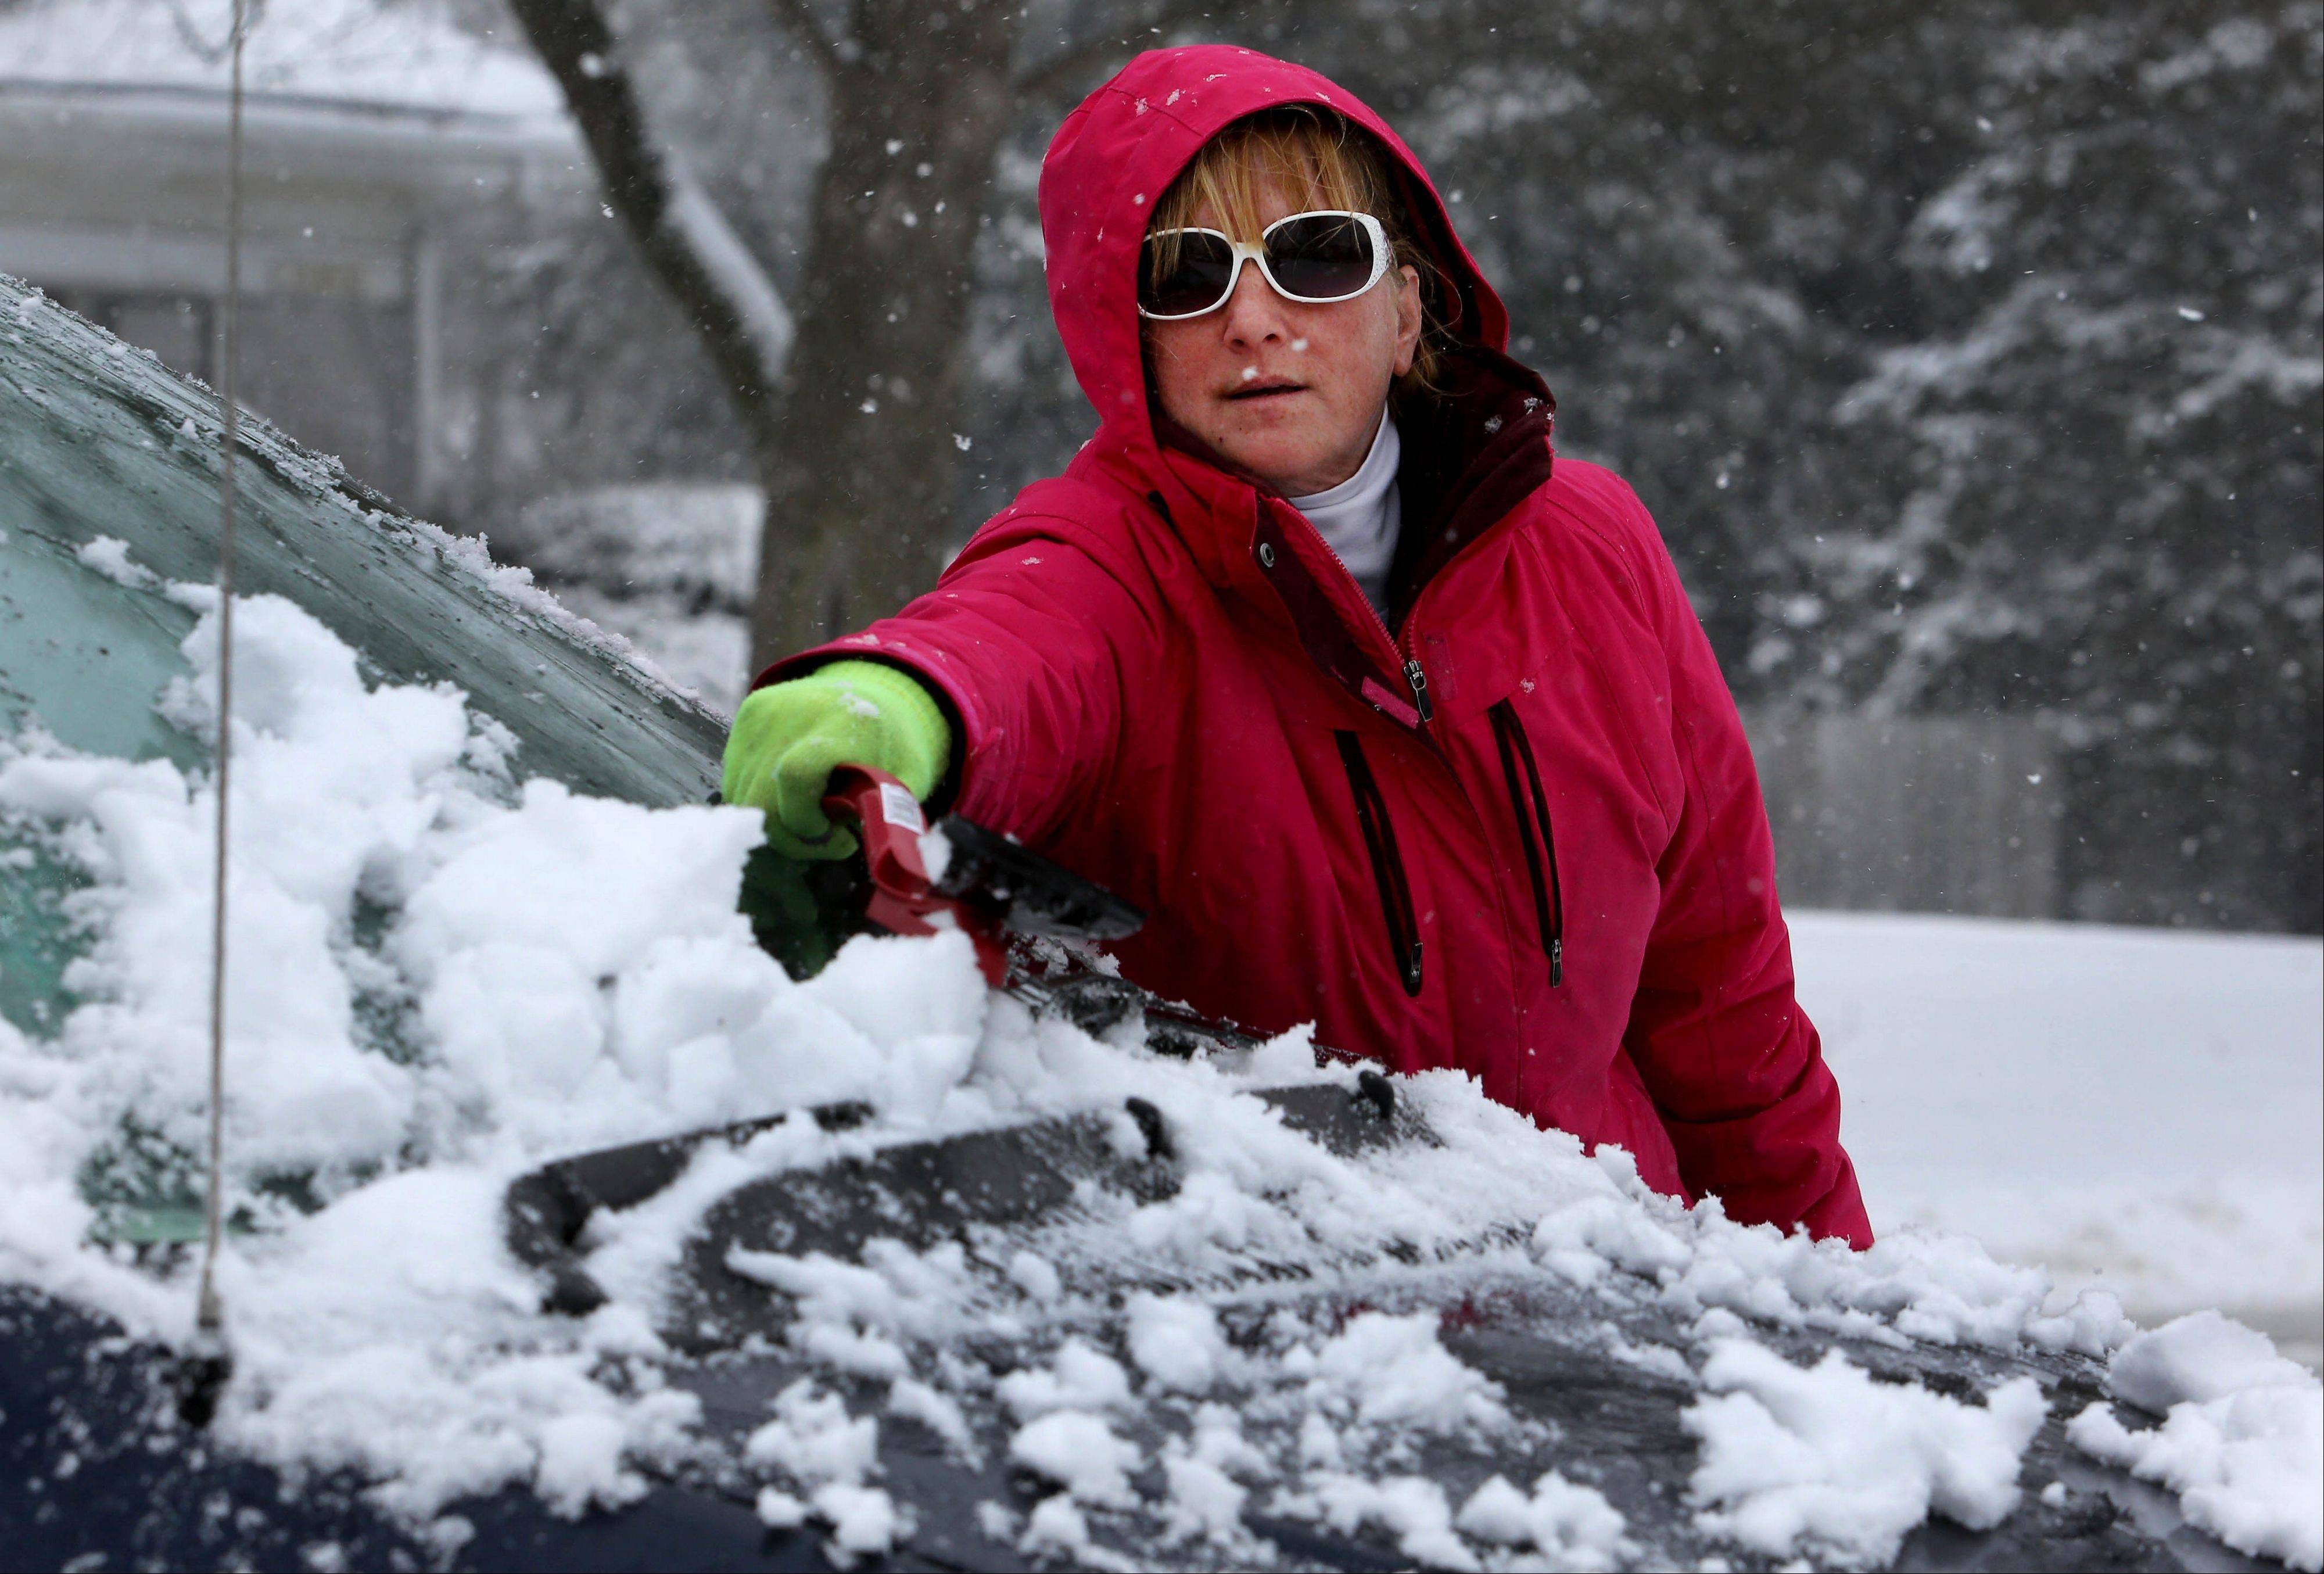 Michelle Miller of Warrenville gets her car cleaned off during the snowstorm on Tuesday.